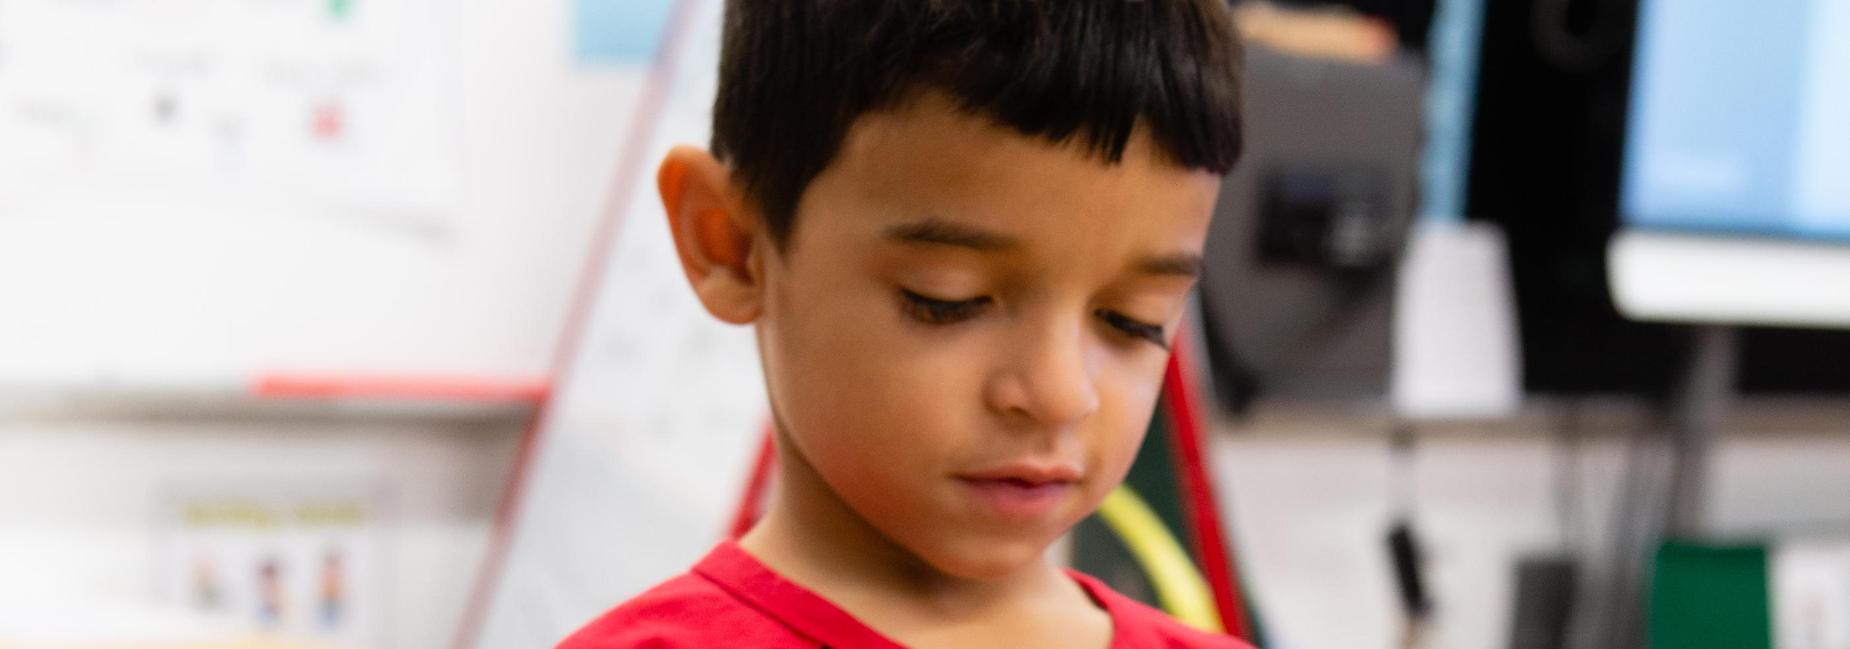 A pre-k student in a classroom looking down pensively.